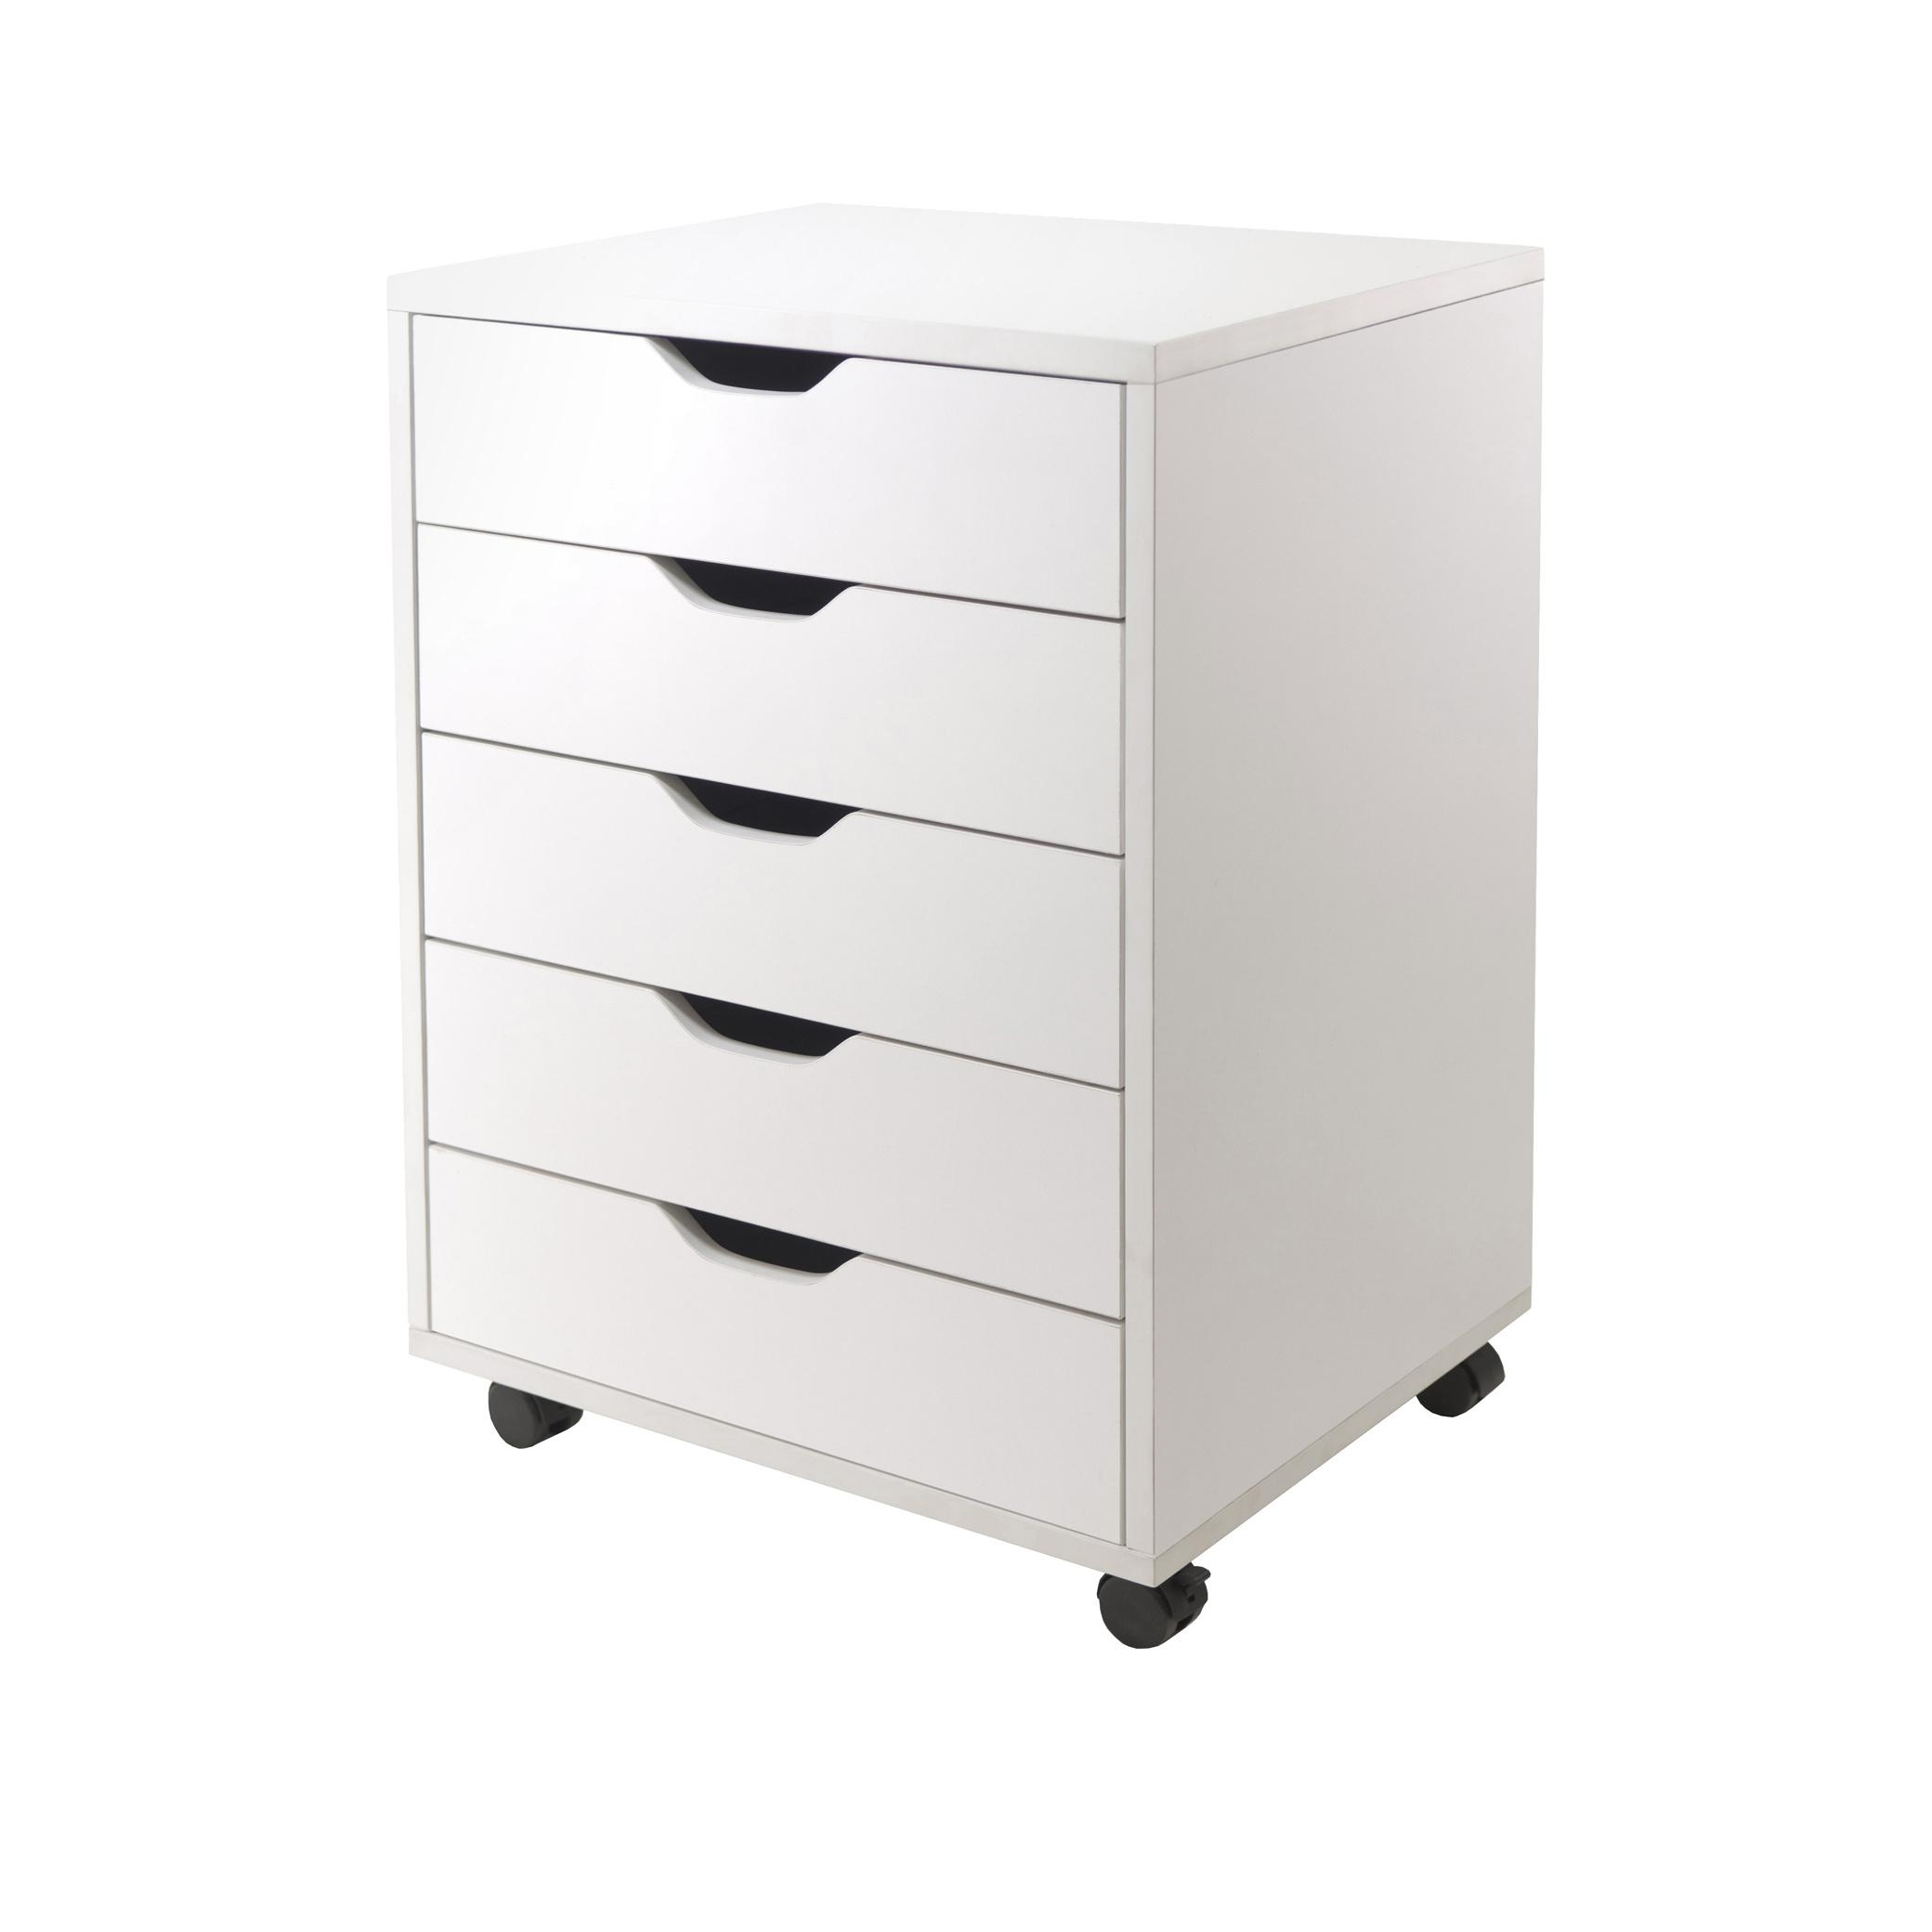 Permalink to Large Storage Cabinet With Drawers